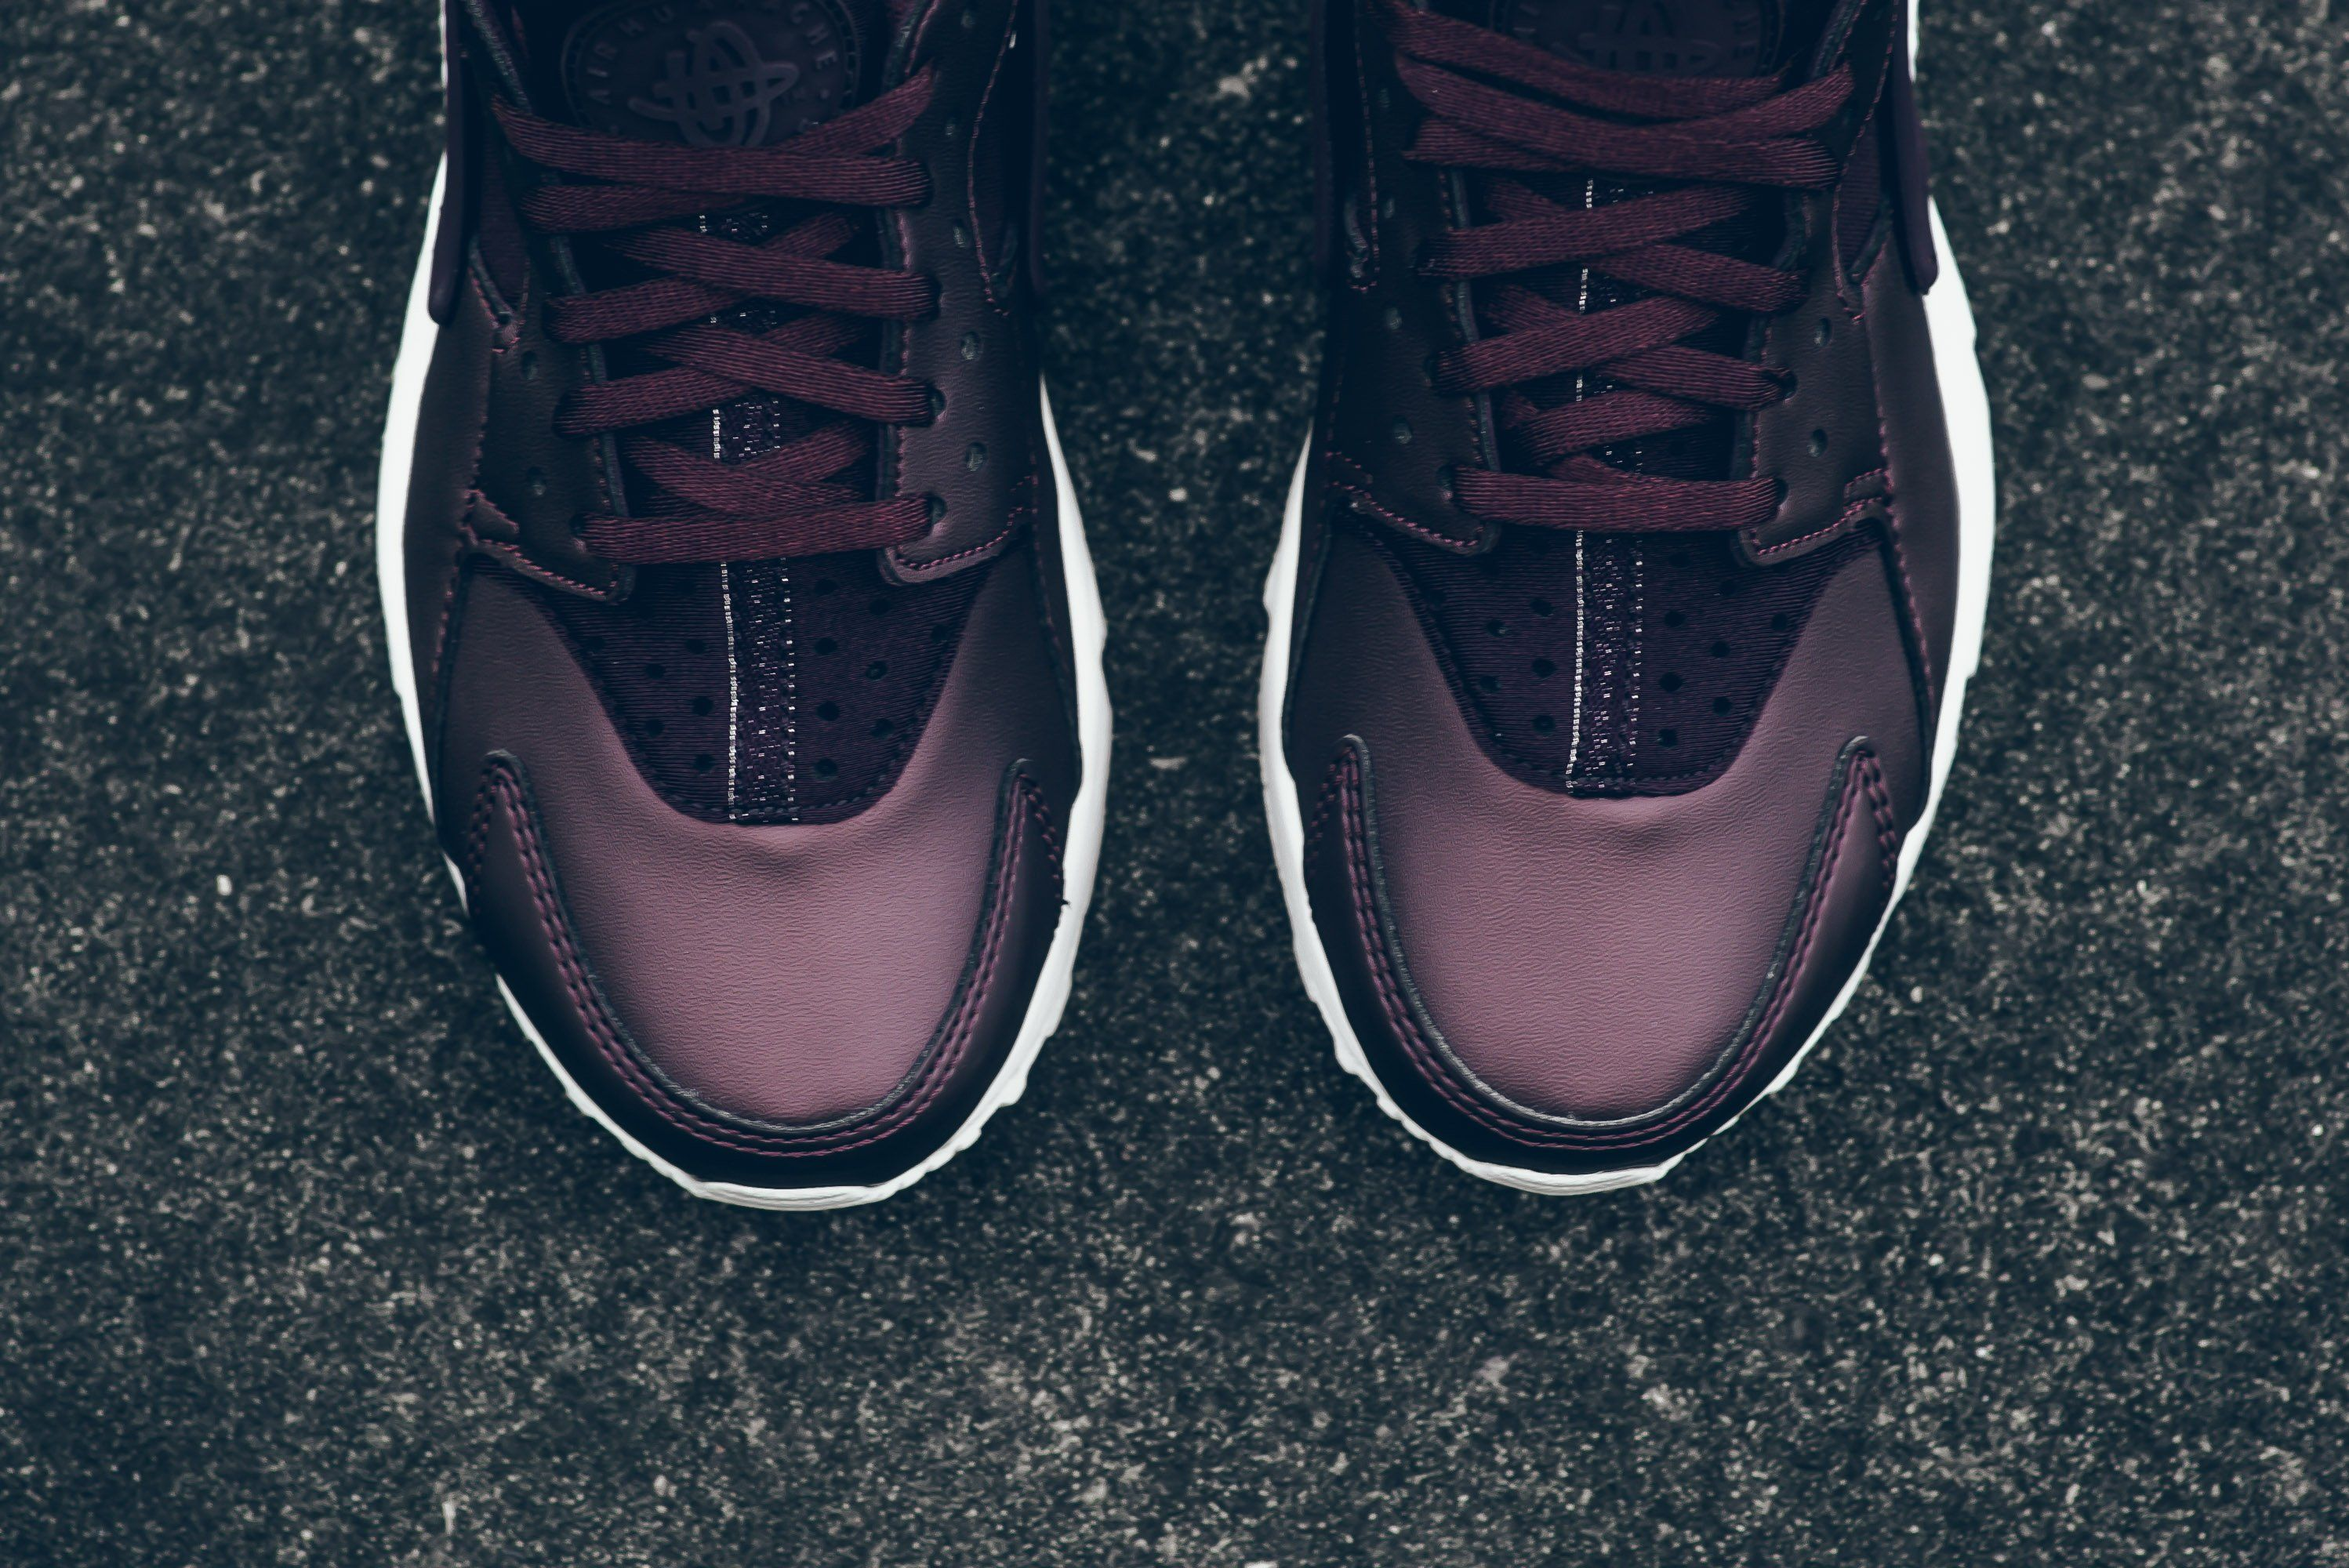 Nike-Air-Huarache-Metallic-Mahogany-4